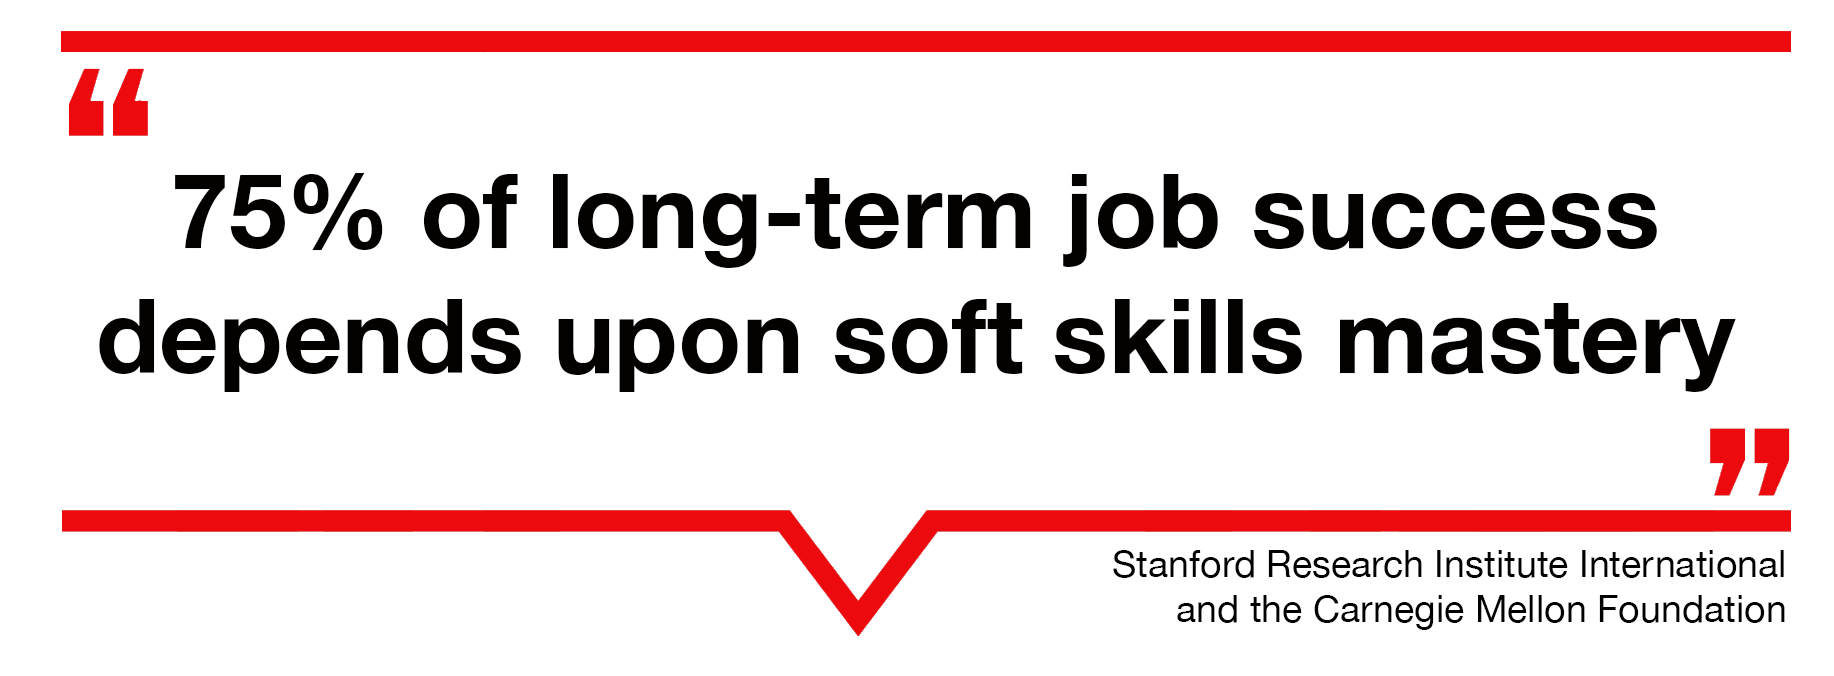 75% of long term job success  depends upon soft skills masteryStanford Research Institute International and the Carnegie Mellon Foundation